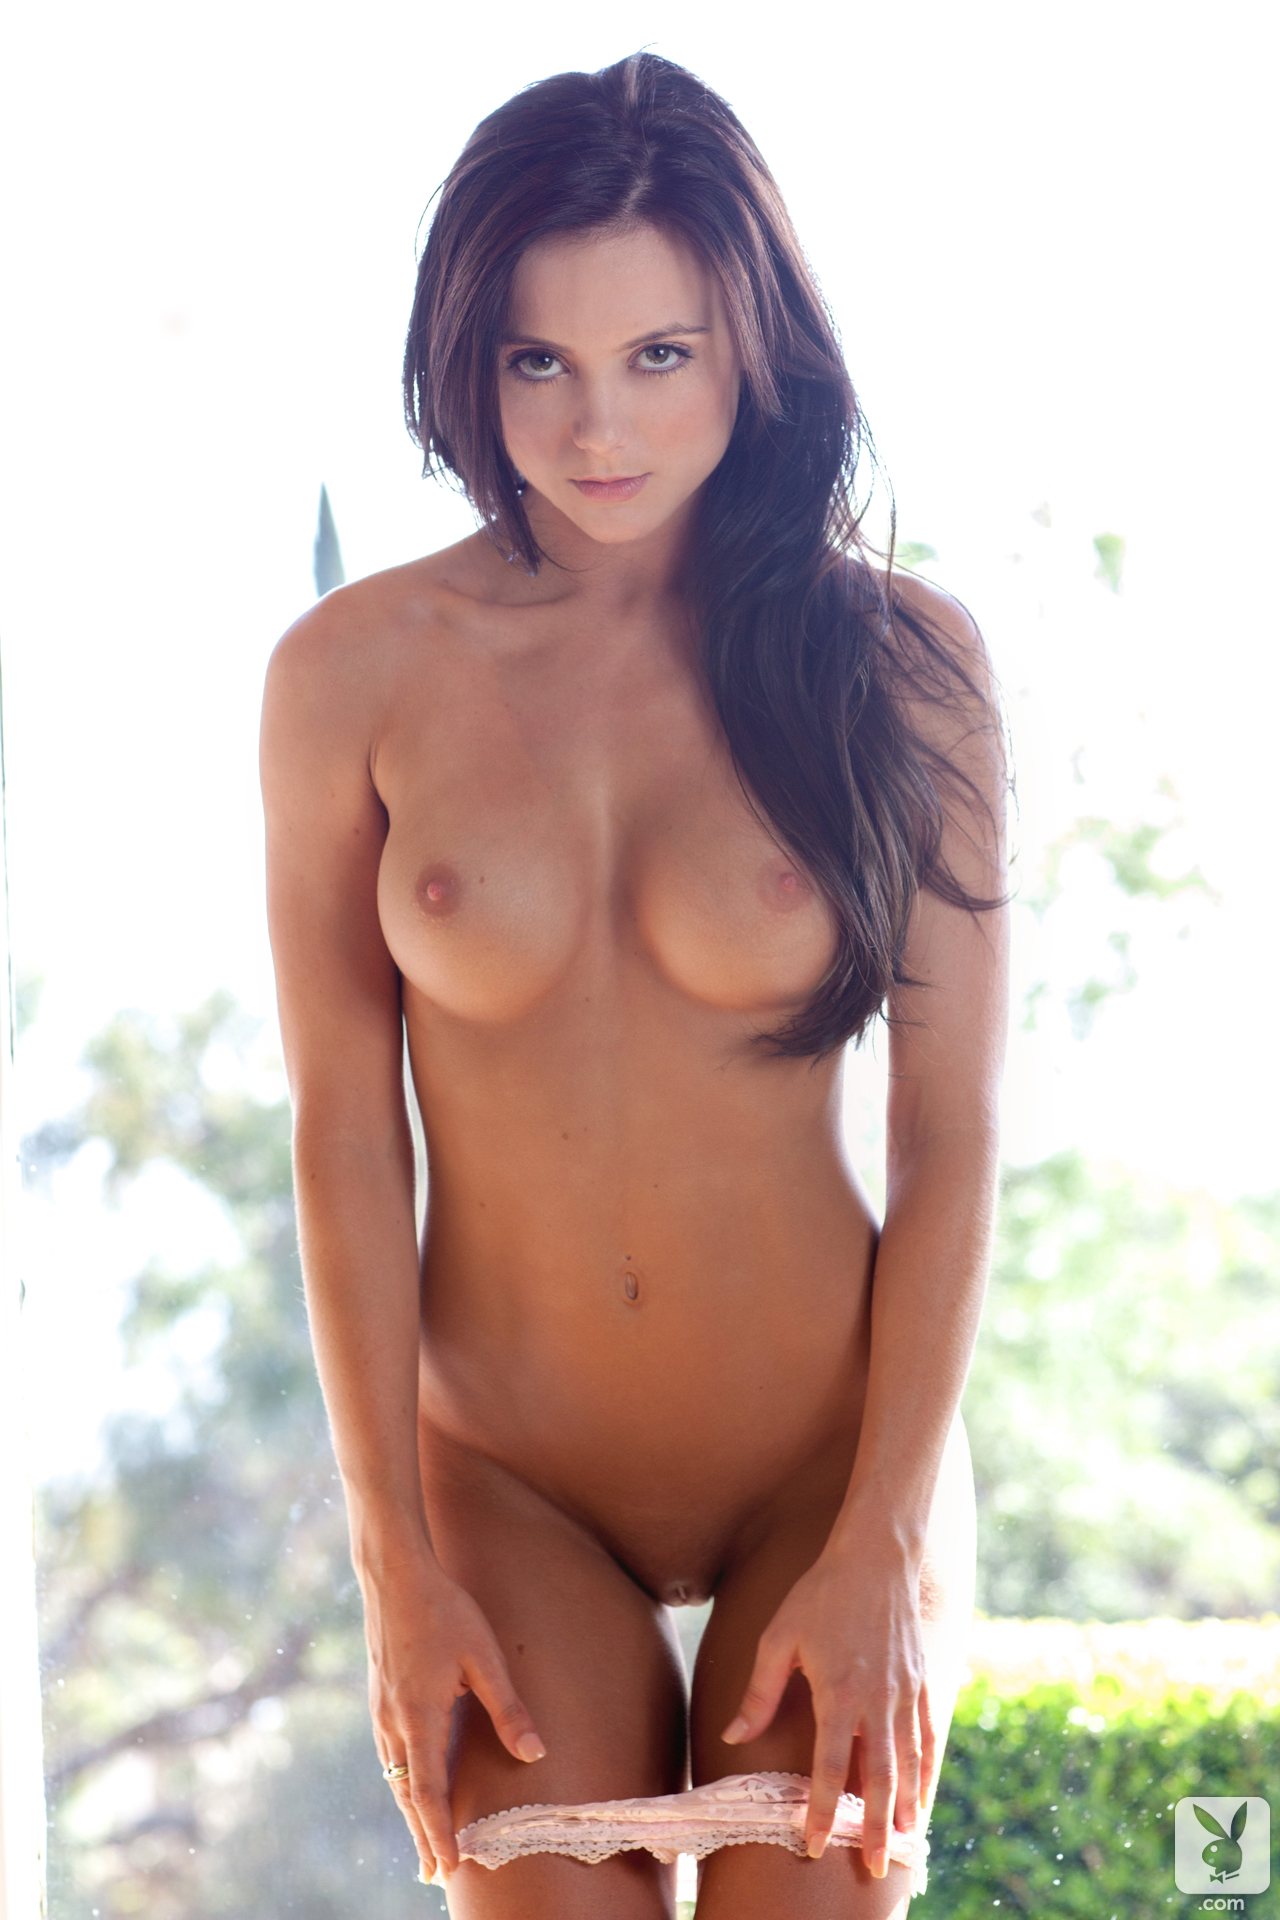 Playboy college girls nude